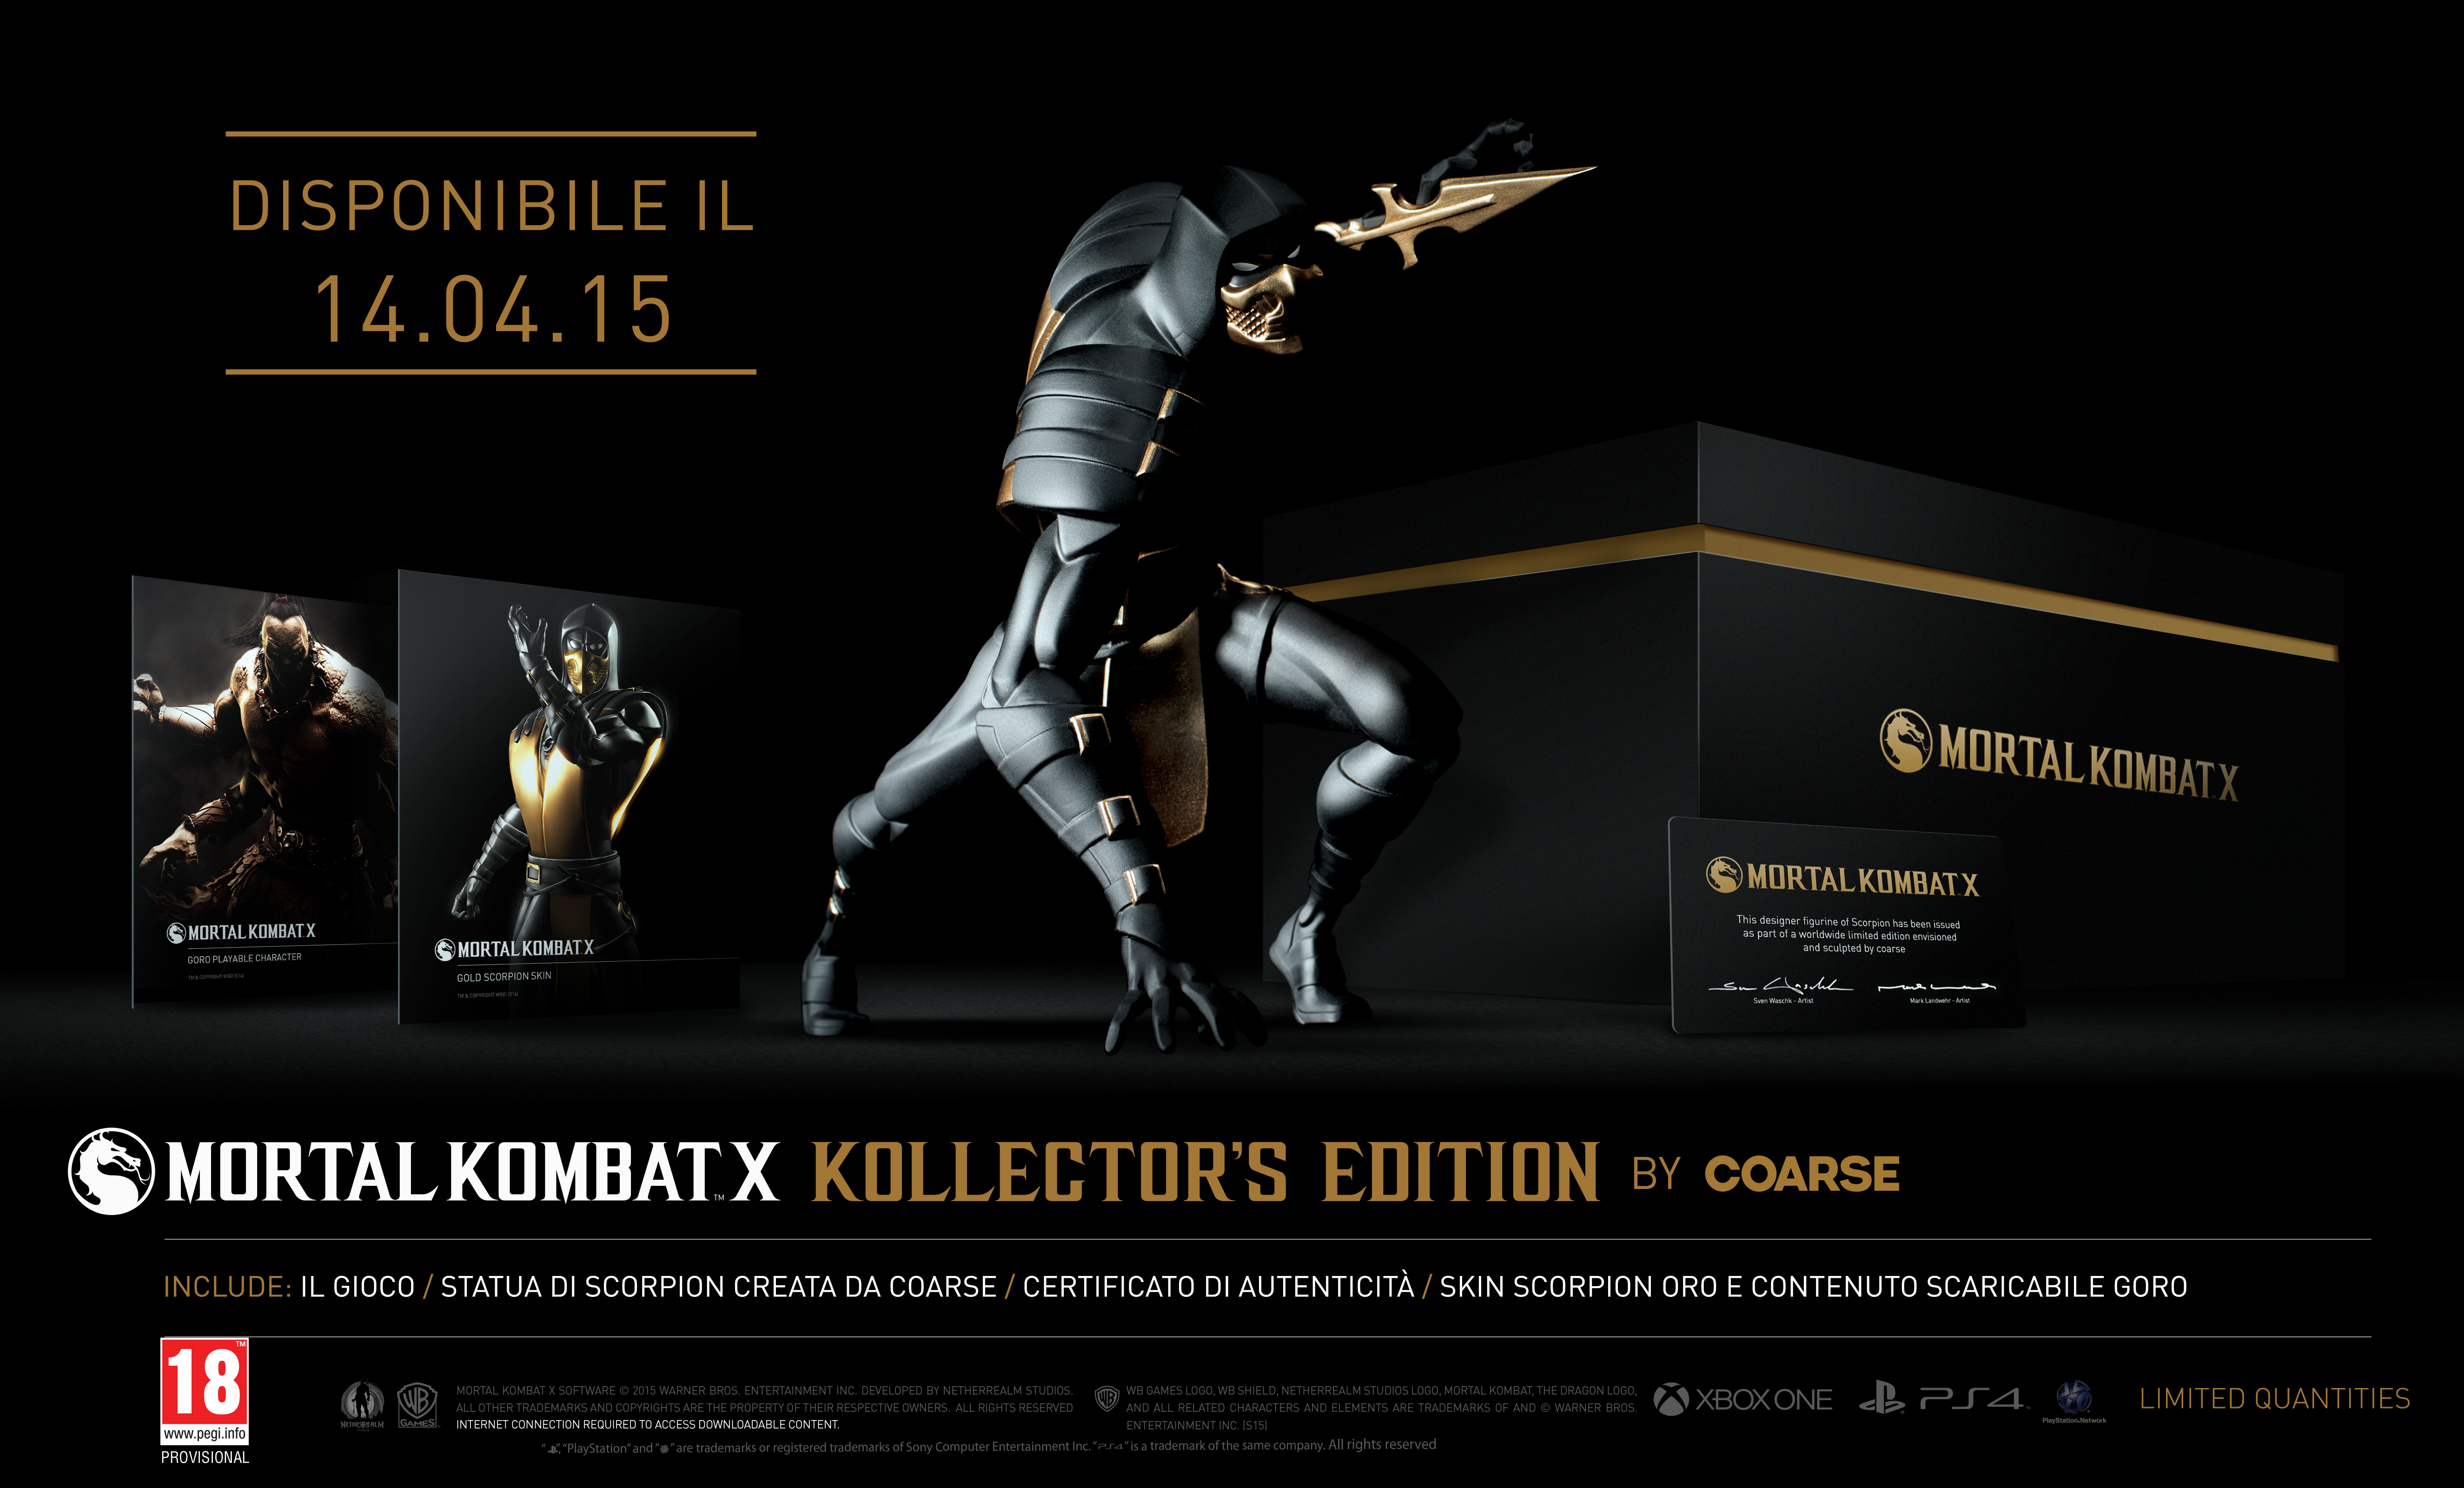 MKX_KollectorsEdition_Beauty_v5_ITA